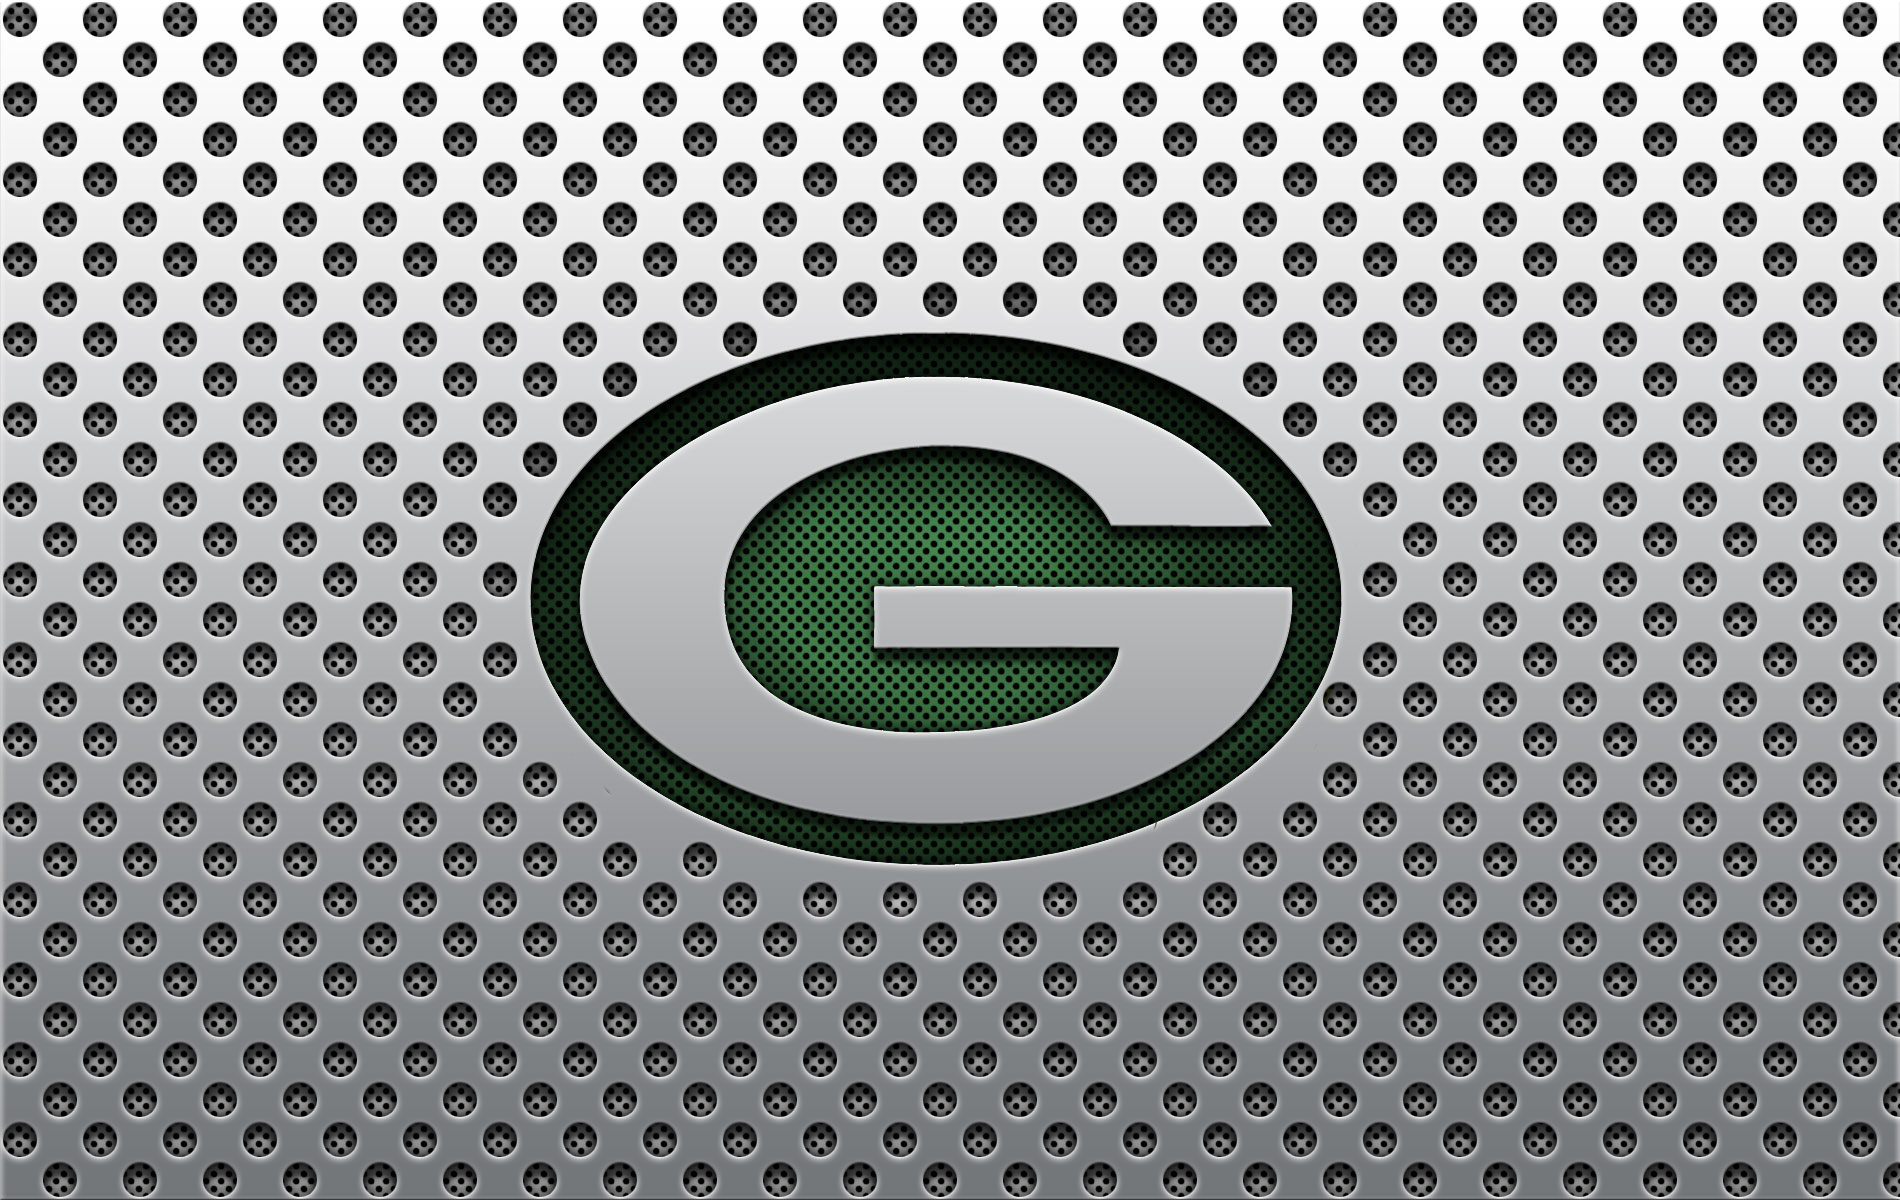 Green Bay Packers Logo Wallpaper Hd Green Bay Packers 2111098